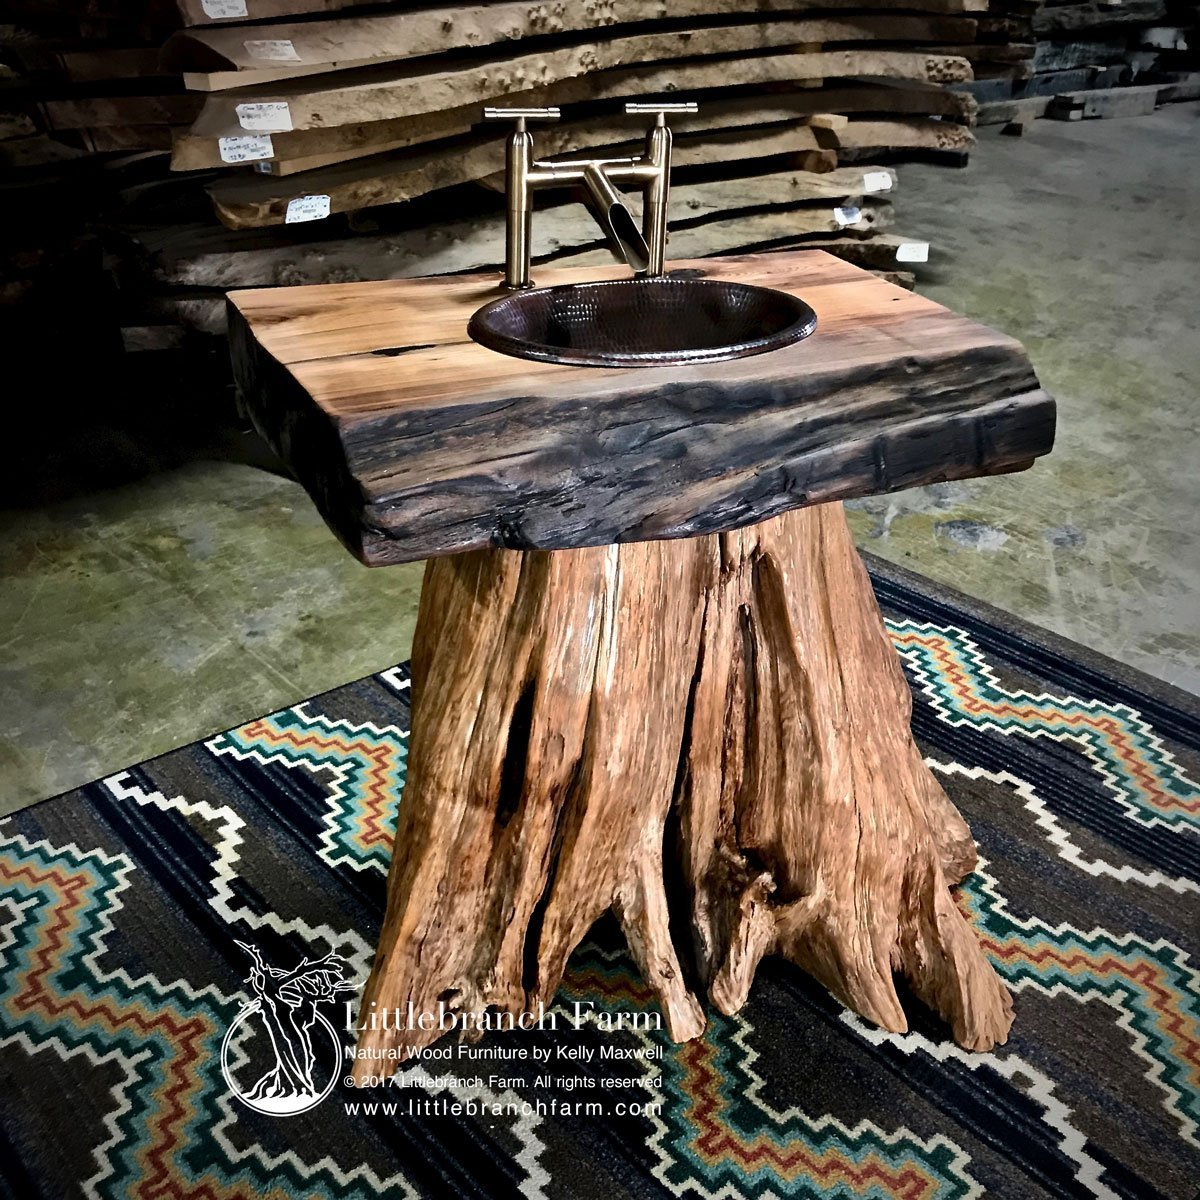 Tree stump sink